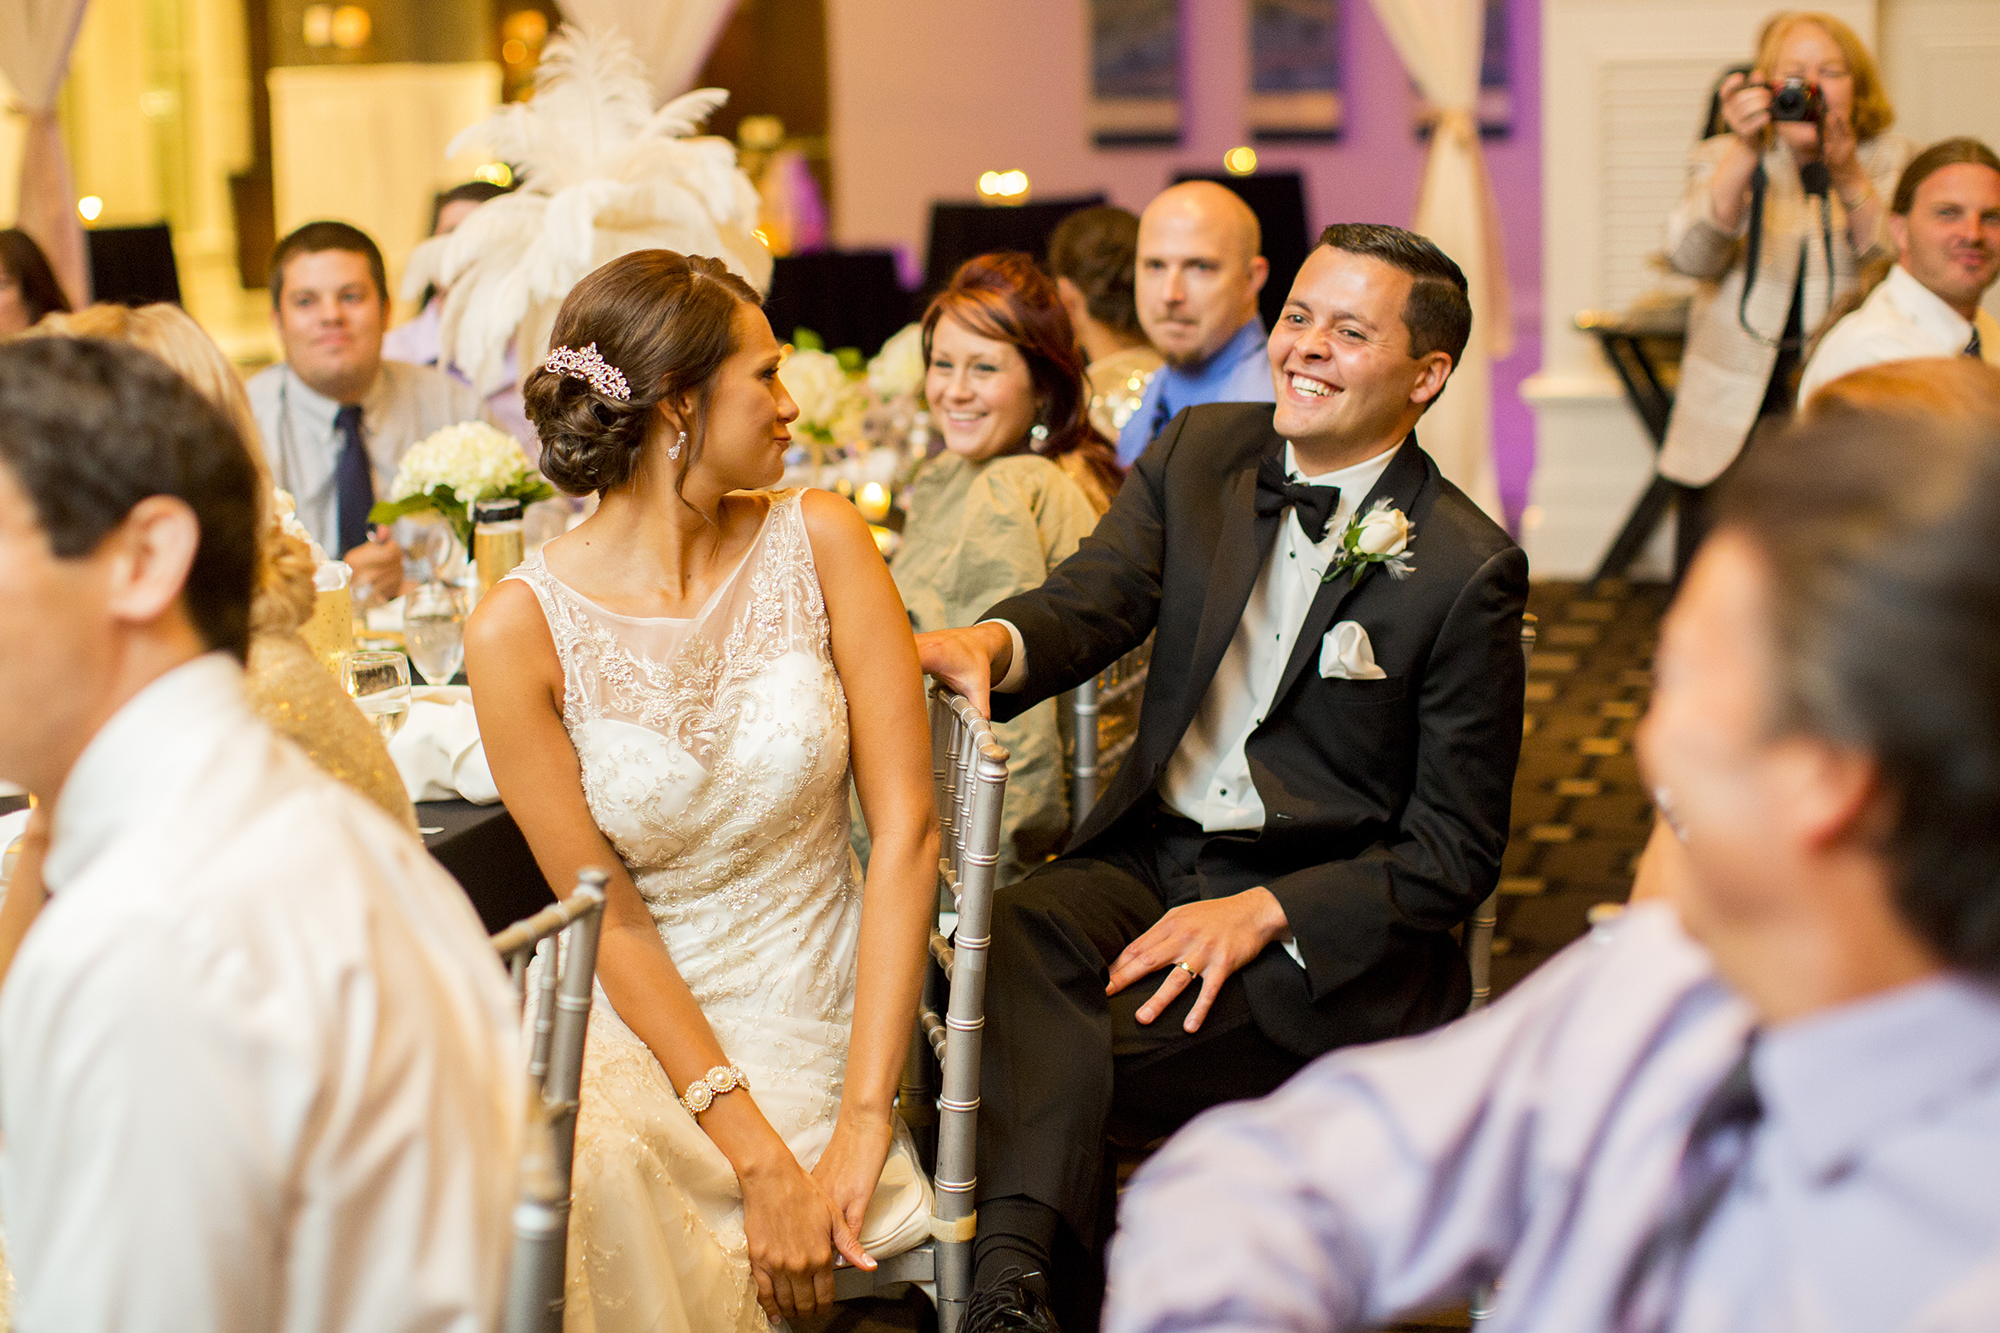 Seriously_Sabrina_Photography_Carrick_House_Lexington_Kentucky_Wedding_Solomon520.jpg